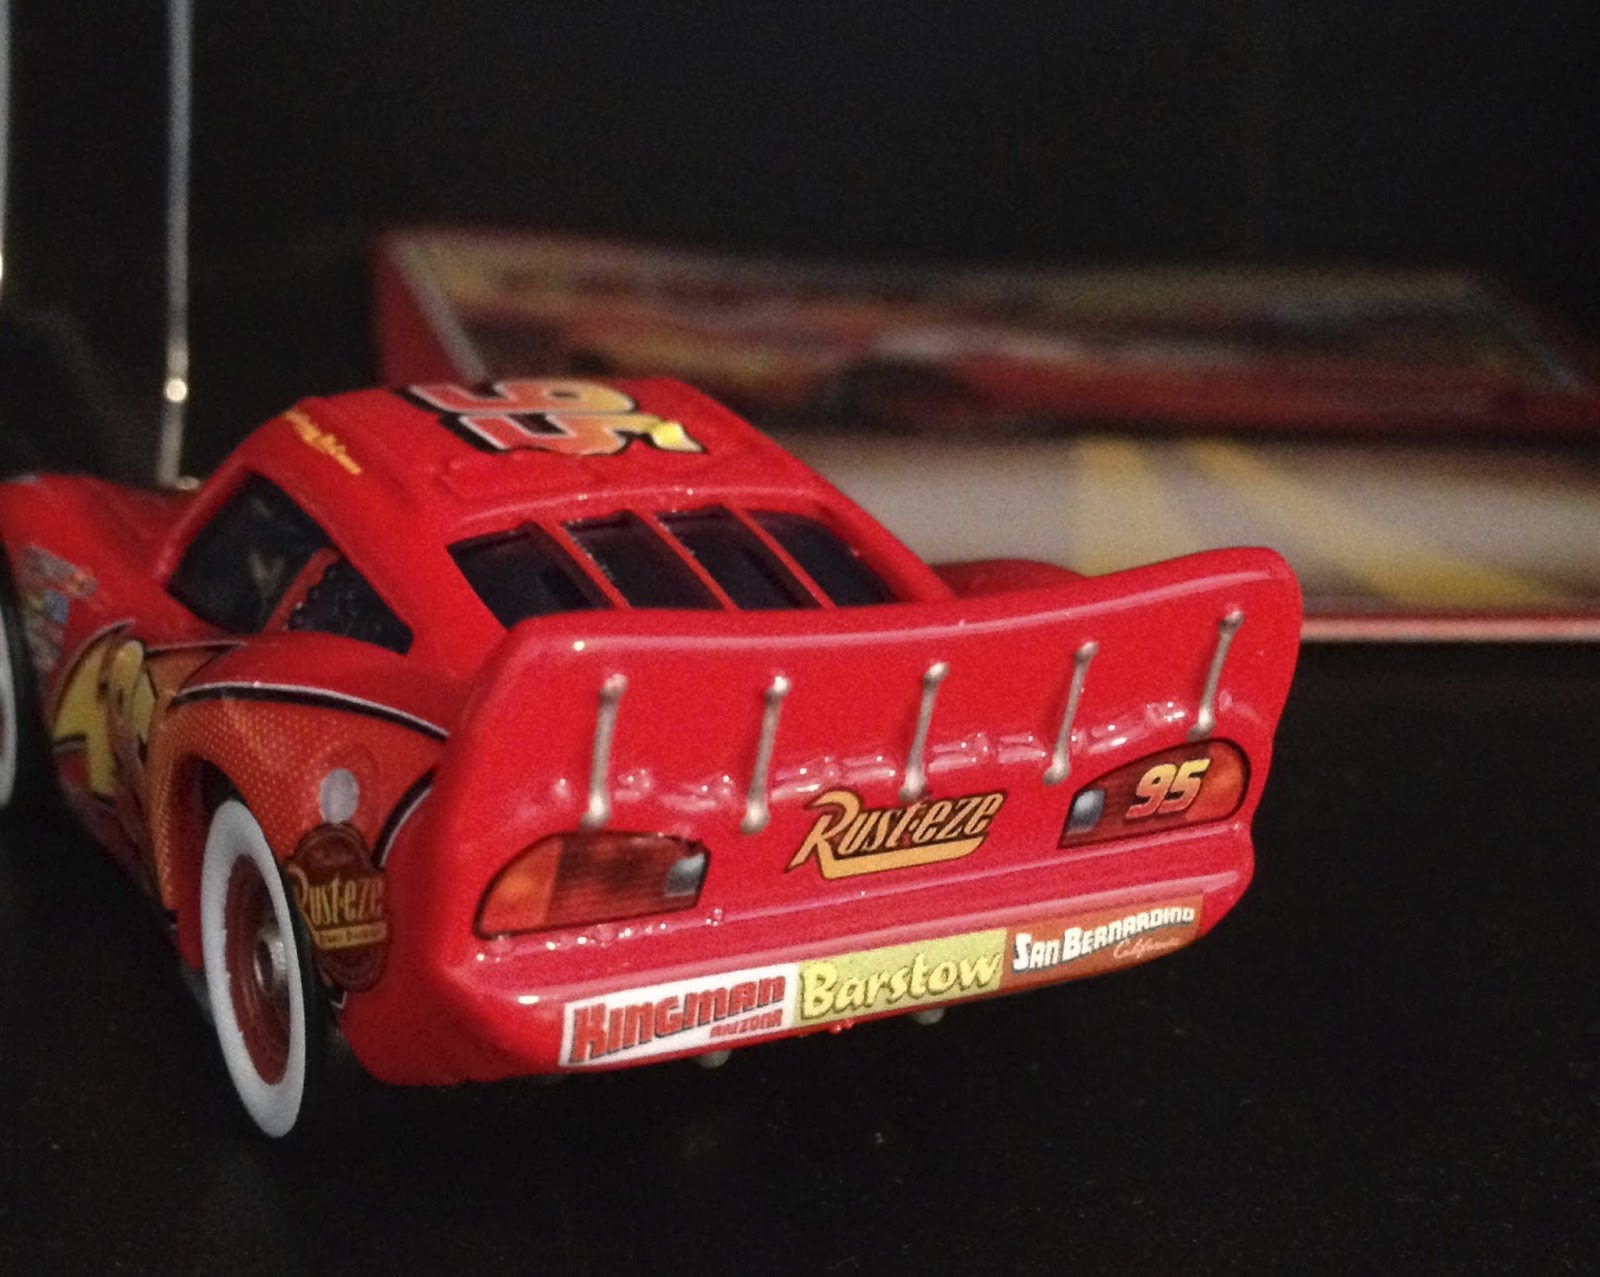 vogler hero s archetype cars lightning mcqueen An archetype models a personality or behavior the true mark of the hero, says vogler they help round-out the hero's journey and develop his character arc.